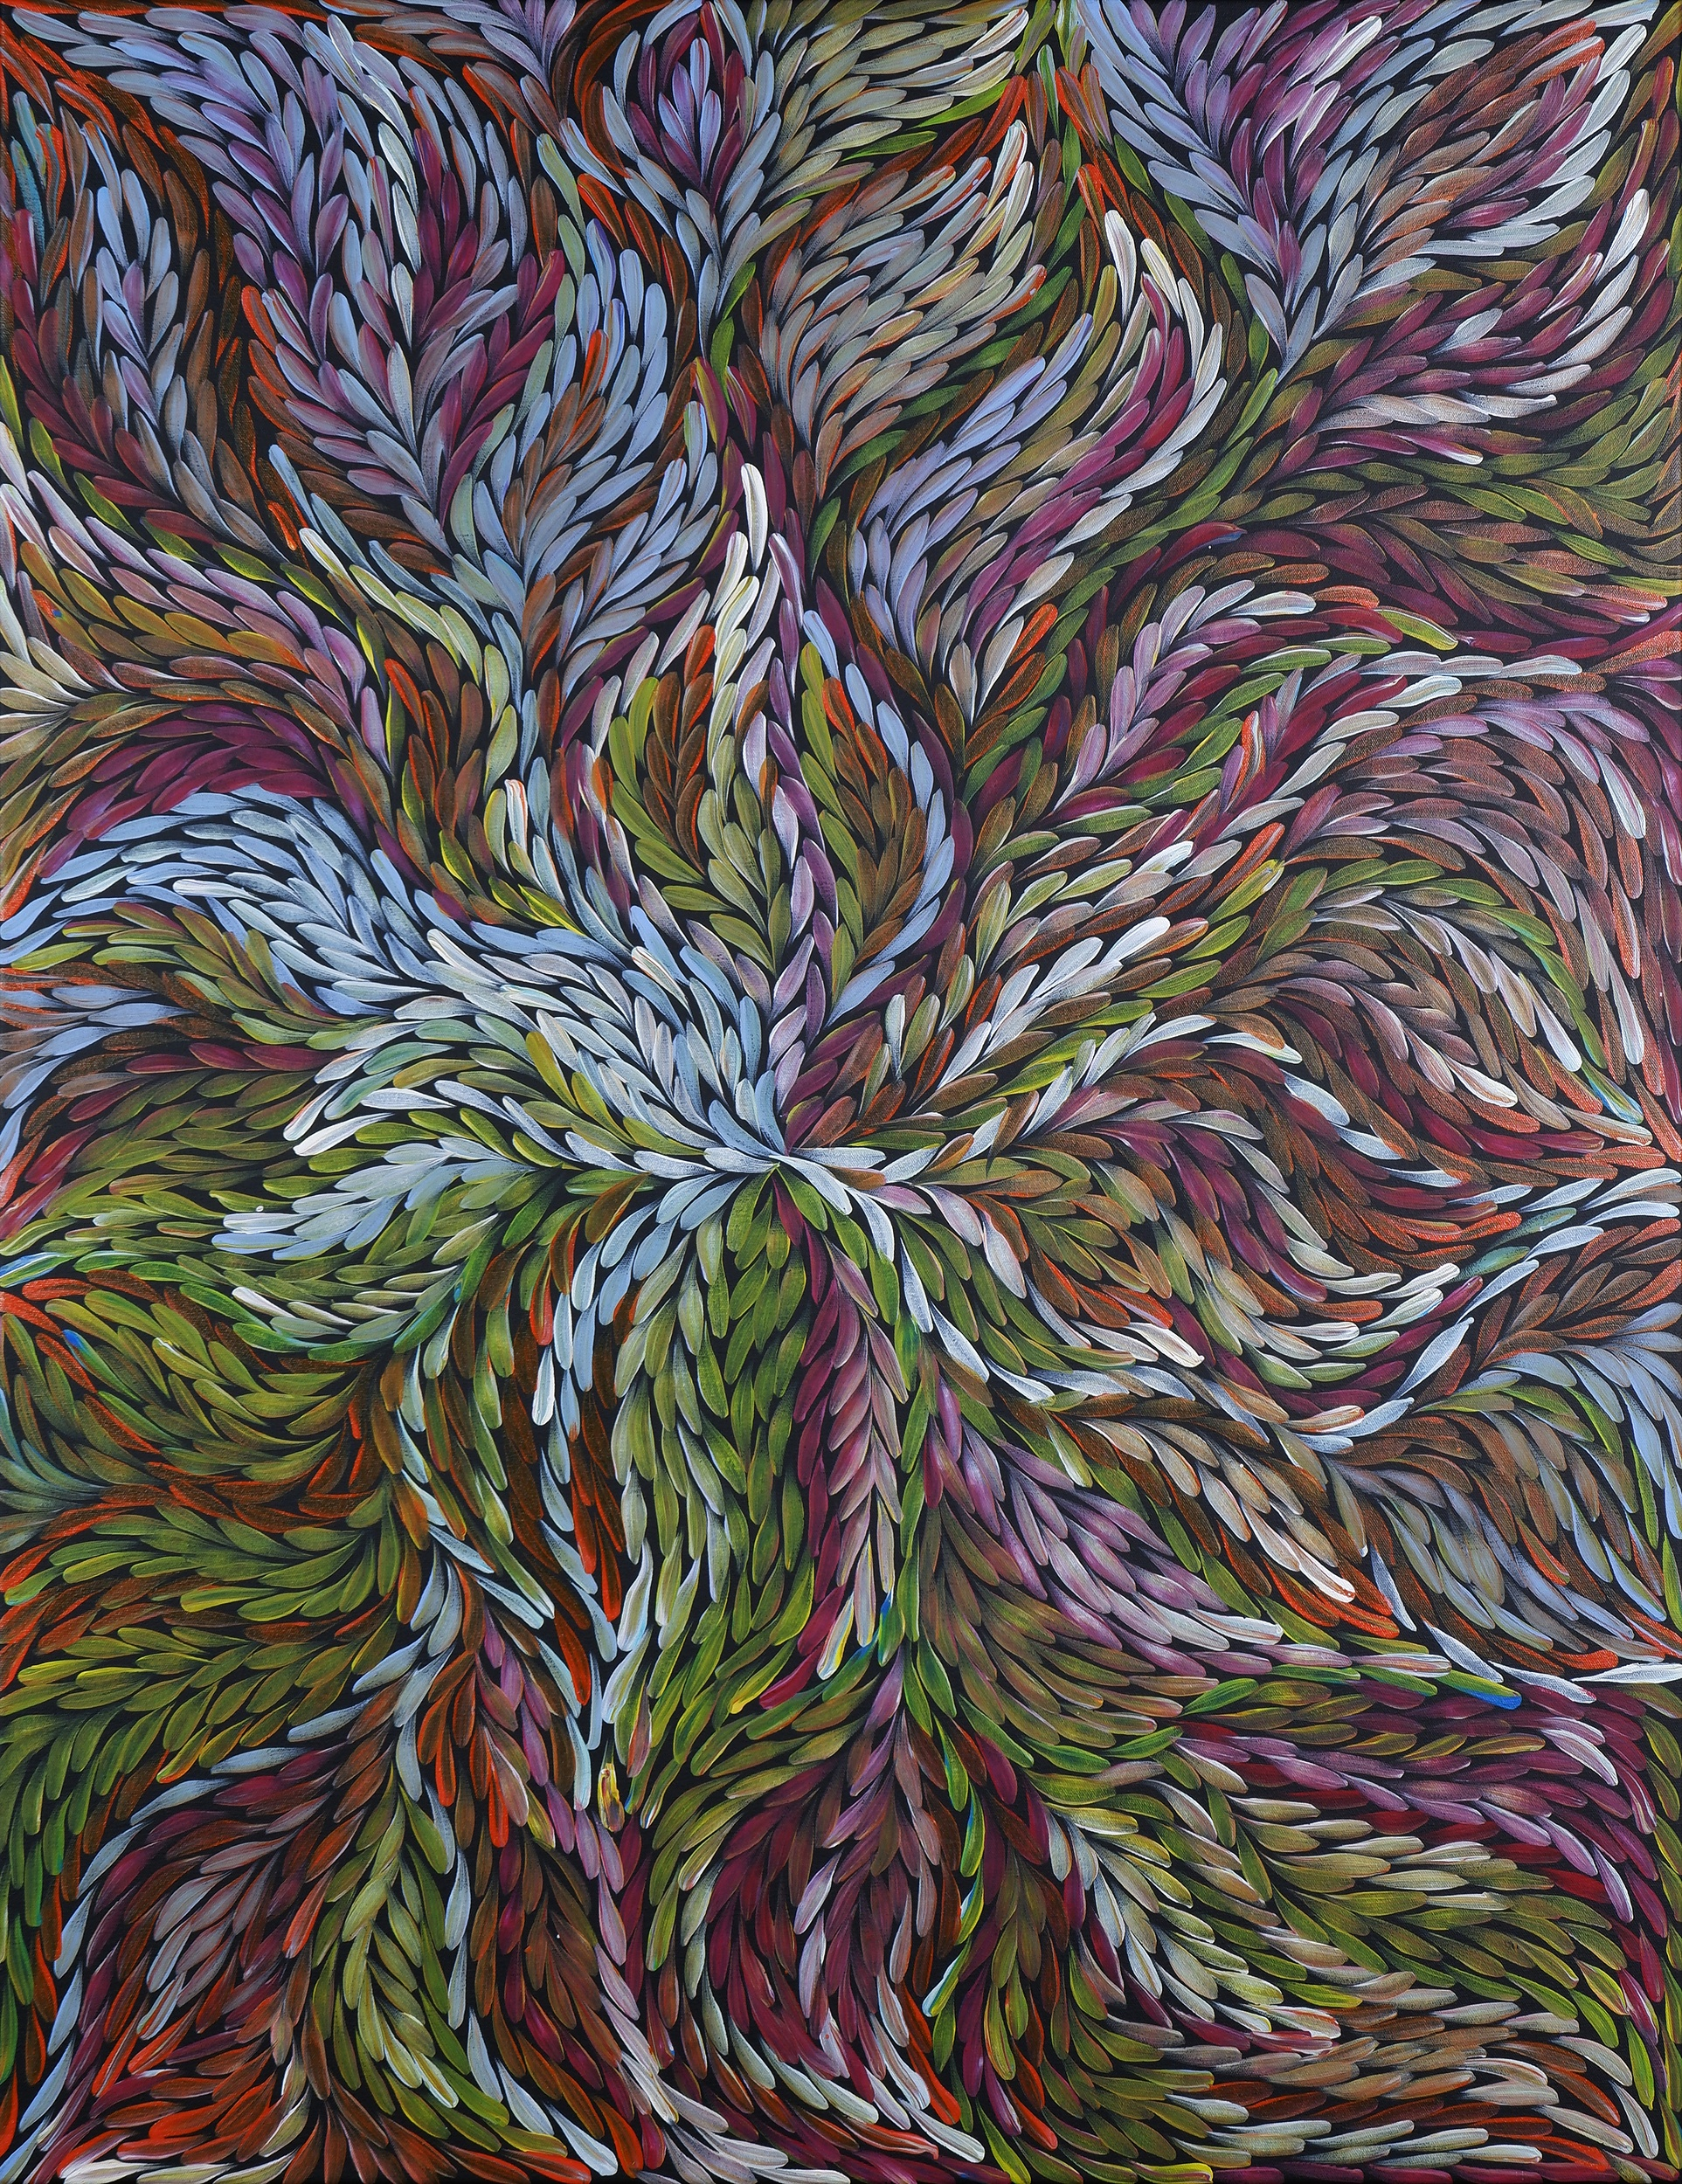 'Rosemary (Pitjara) Petyarre (born c1965), Yam Leaf Dreaming, Synthetic Polymer Paint on Canvas'